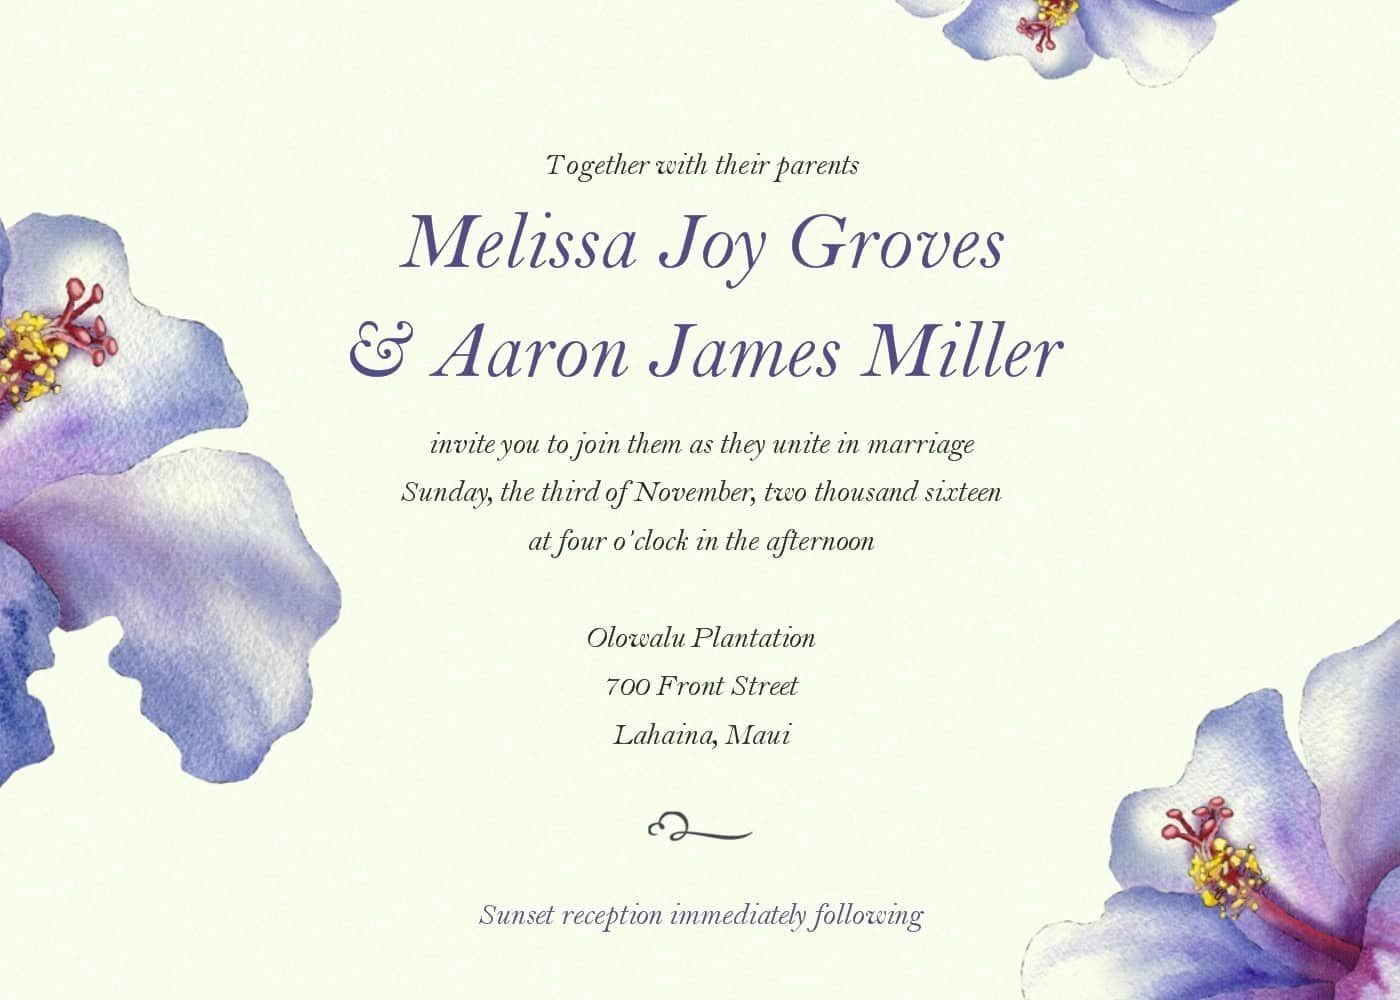 005 Incredible Microsoft Office Wedding Invitation Template Highest Quality  Templates MFull